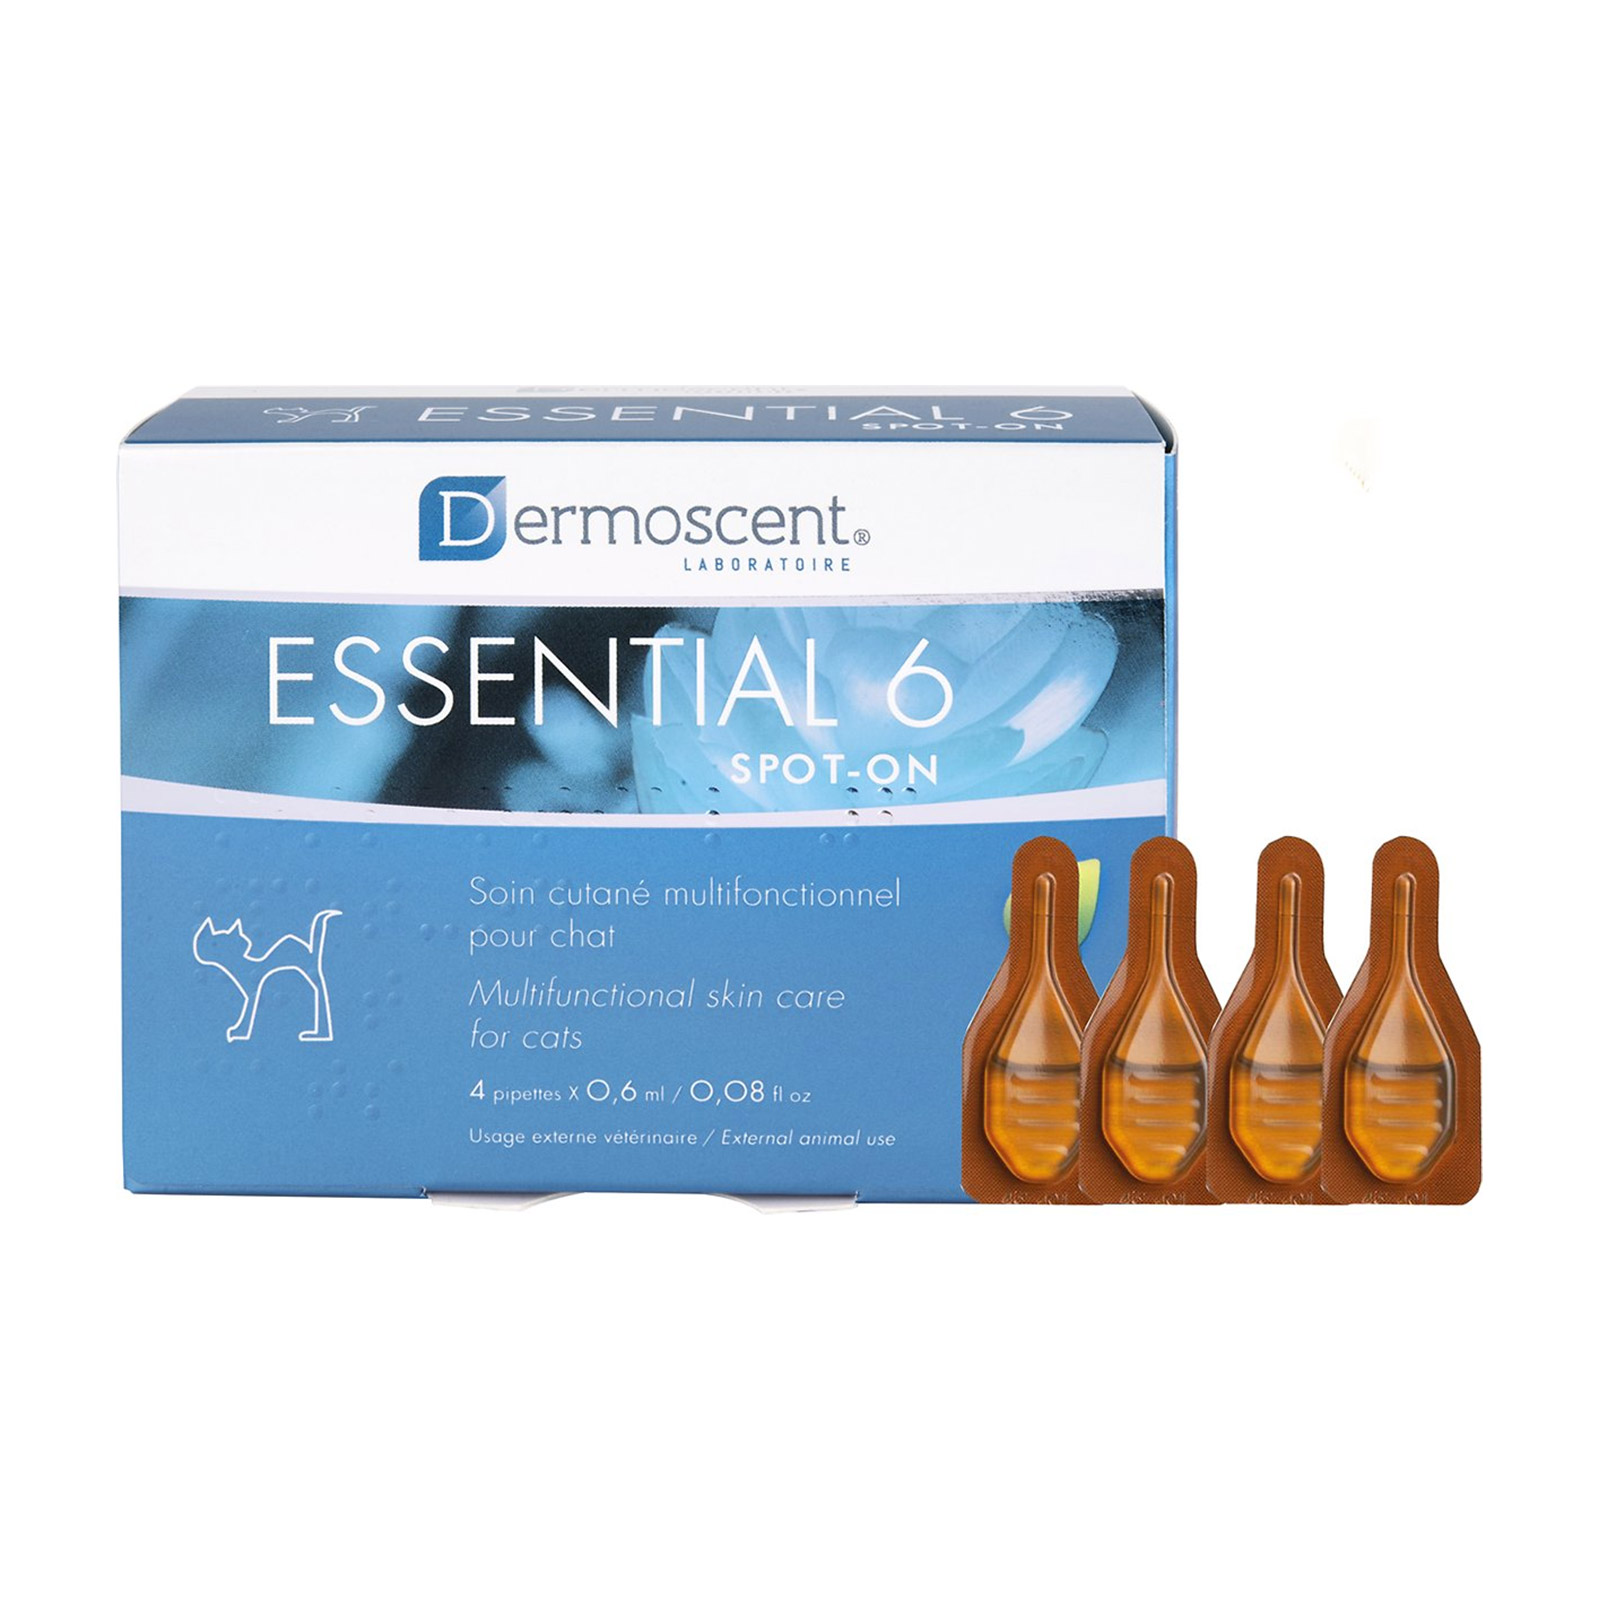 Dermoscent-Essential-6-for-cats.jpg